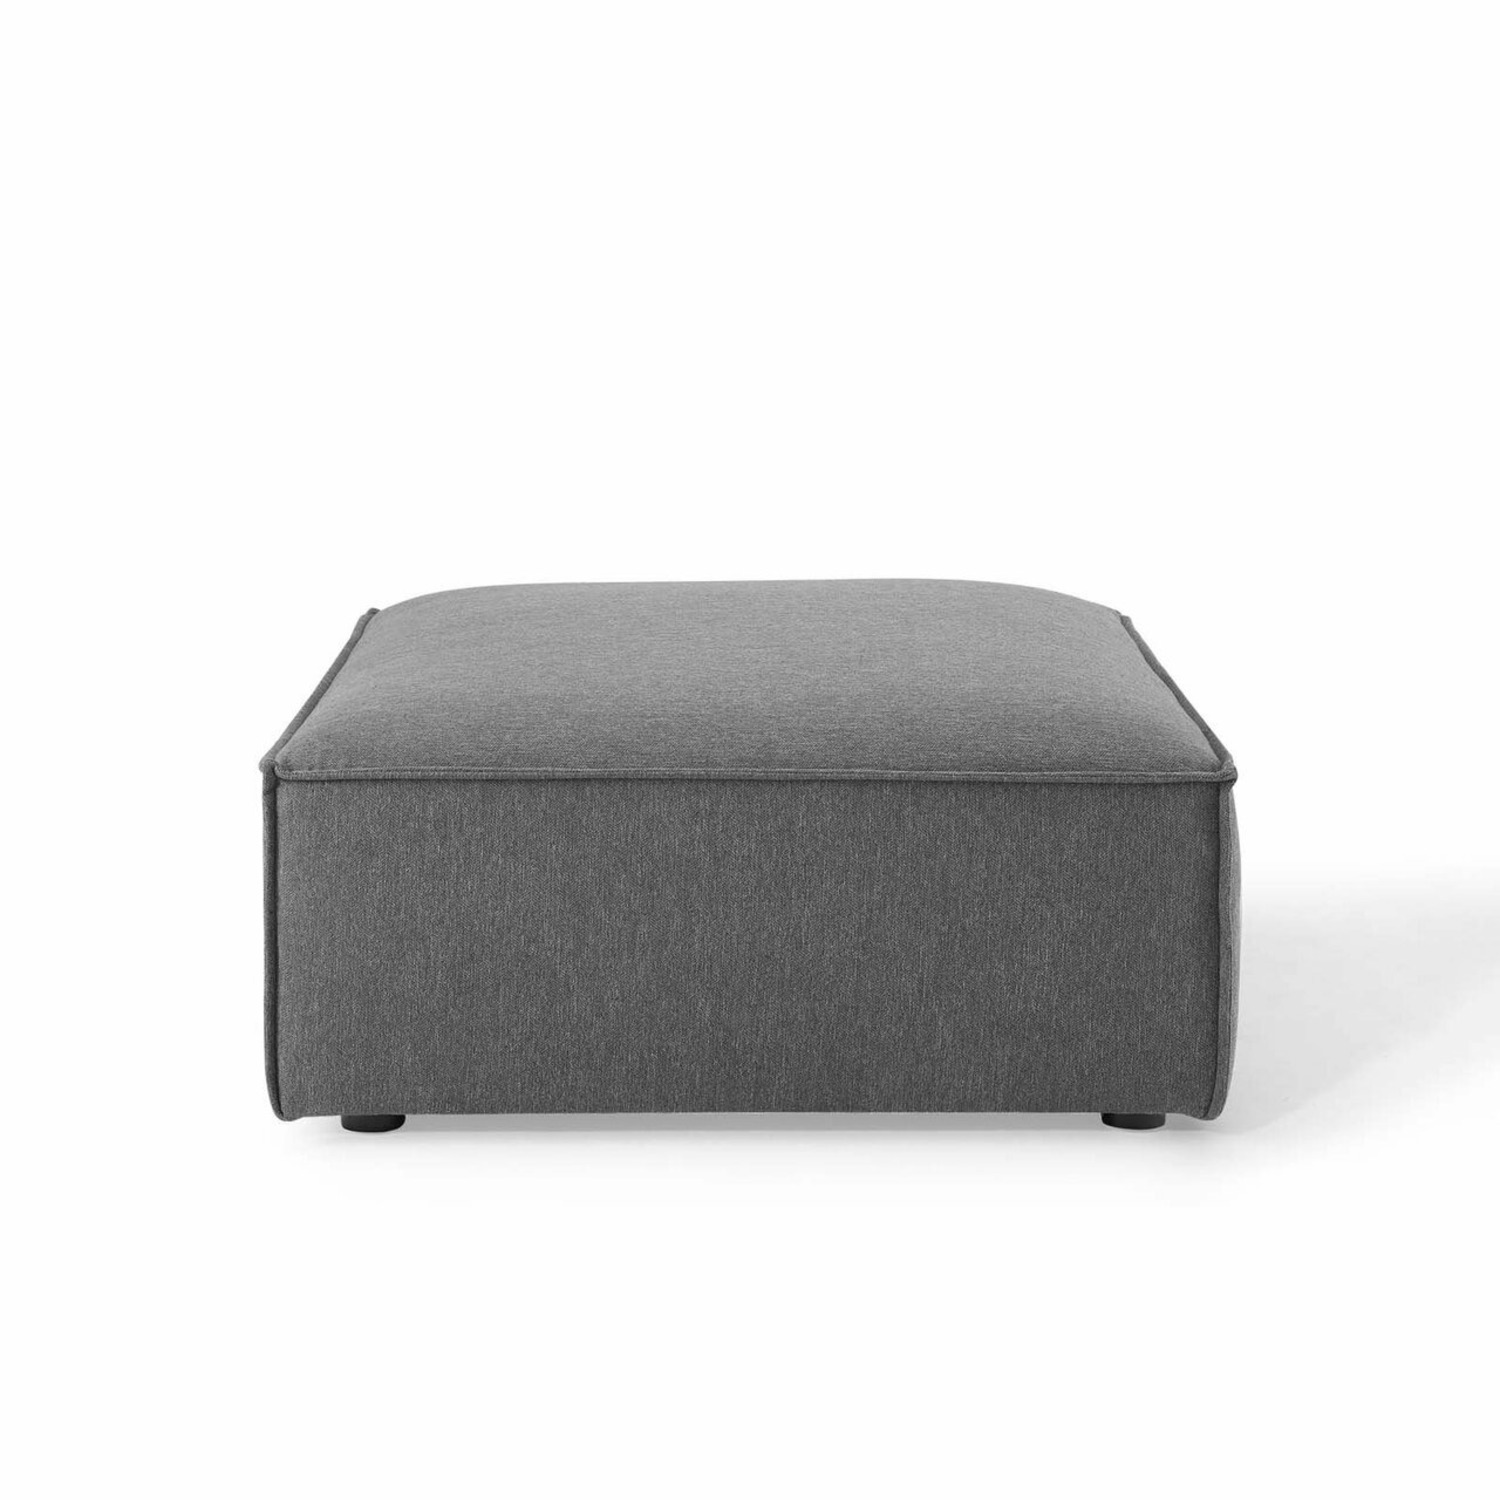 6-Piece Sectional Sofa In Charcoal Fabric - image-10